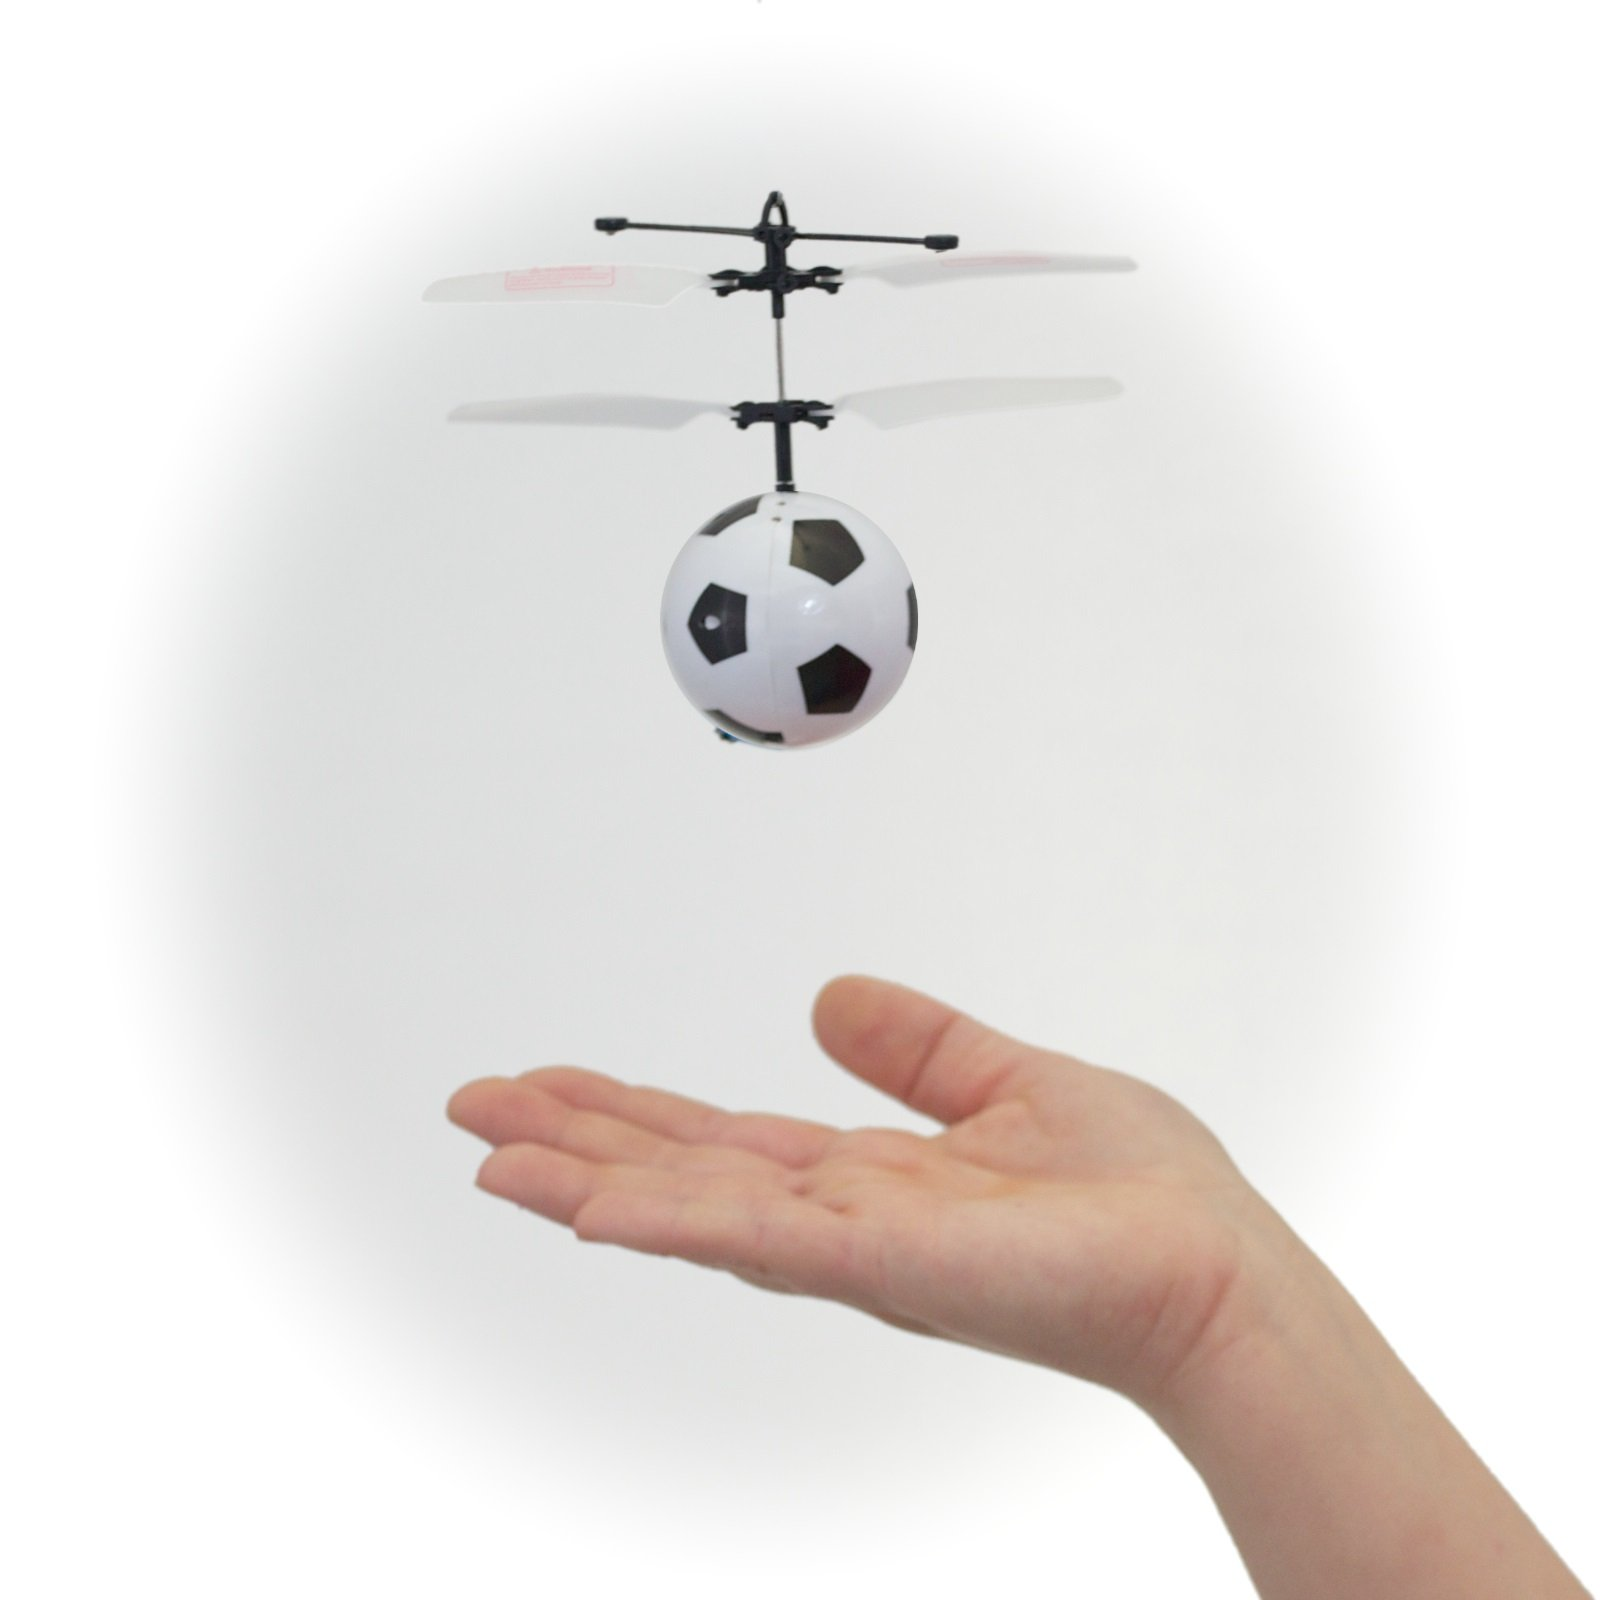 Mukikim Mini Flyer - Soccer/Watch it hover, float and fly like magic. Bring a smile to your face as you have fun flying. (Newest version featuring USB charging!)